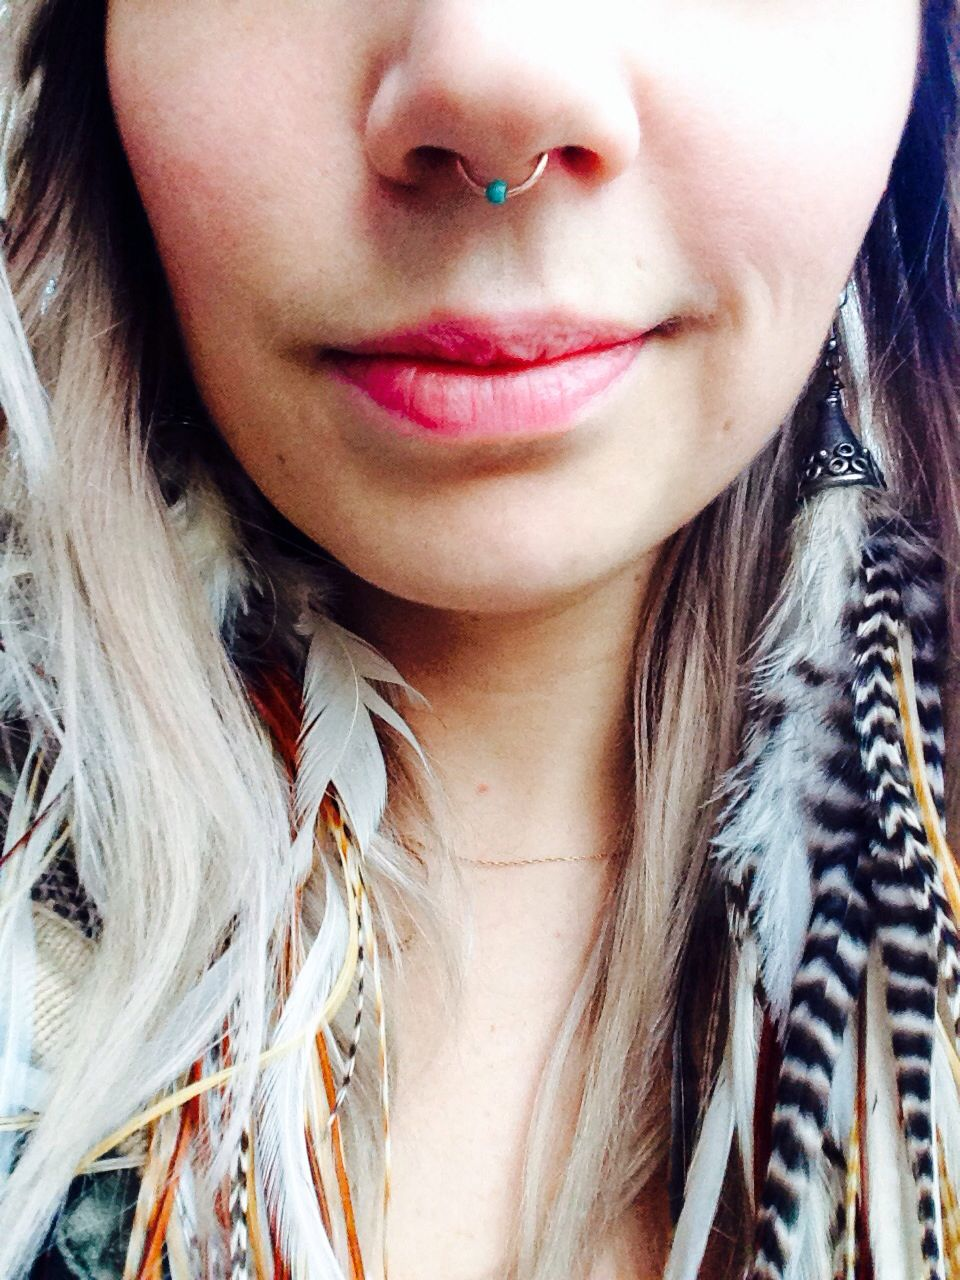 Septum piercing vs nose piercing  My nose ring is in my nostril not septum but Iud love to have this